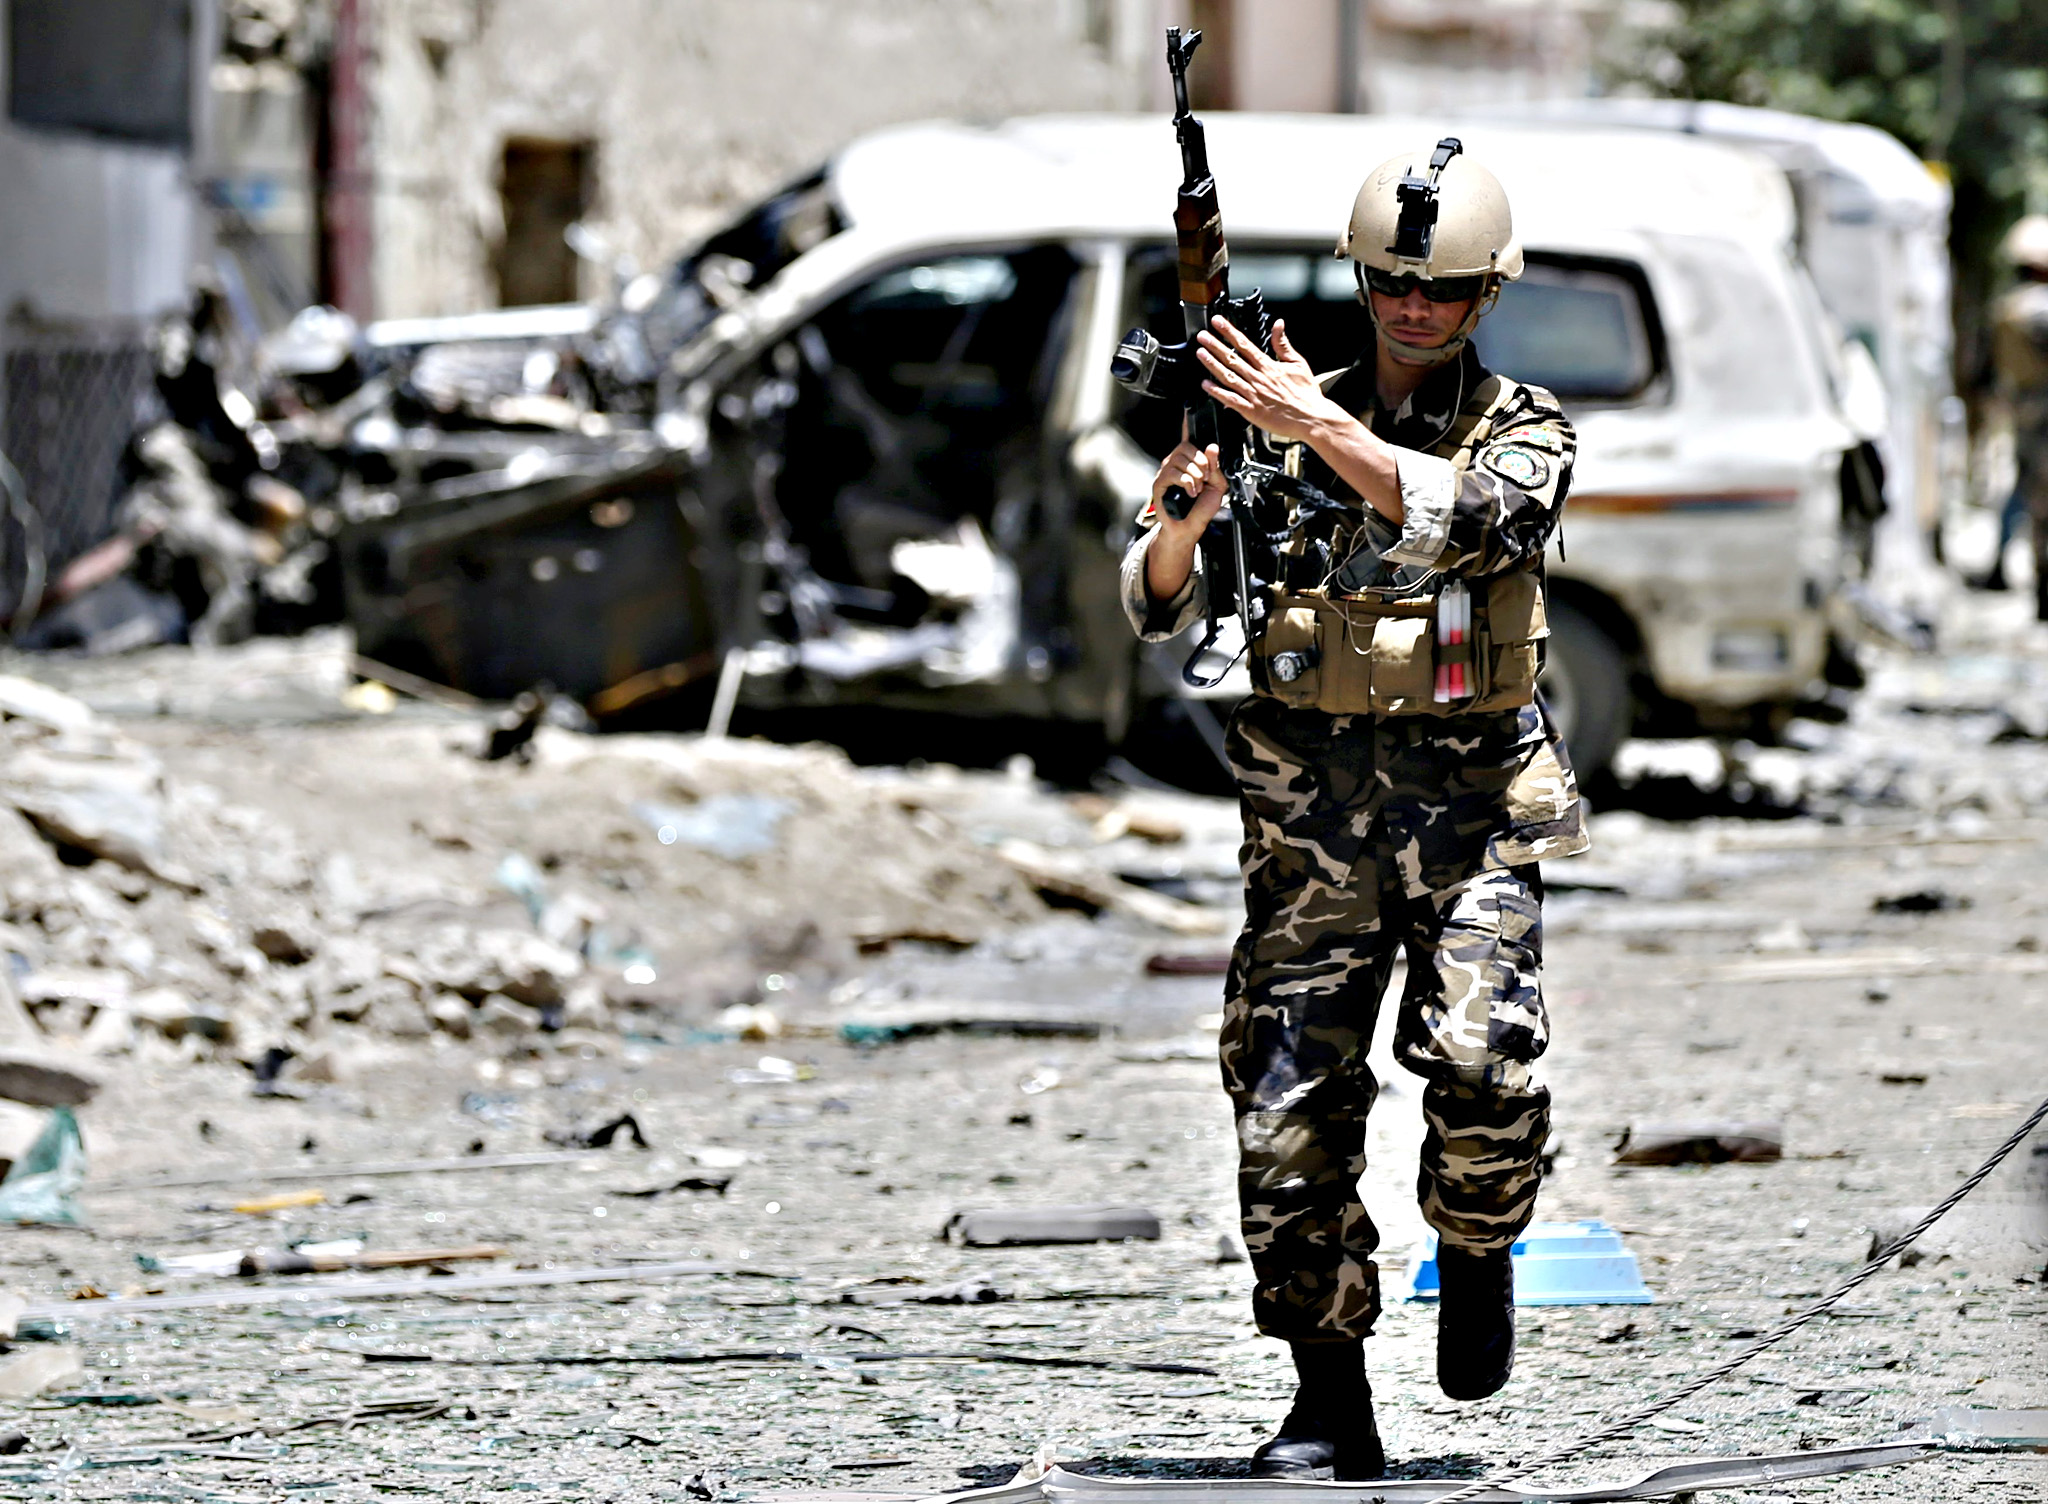 A member of the Afghan security forces keeps watch at the site of a suicide attack in Kabul, Afghanistan July 7, 2015. A suicide car bomber slammed into a convoy of foreign forces in the Afghan capital on Tuesday, the Ministry of Interior spokesman said, but it was not clear whether there were any casualties